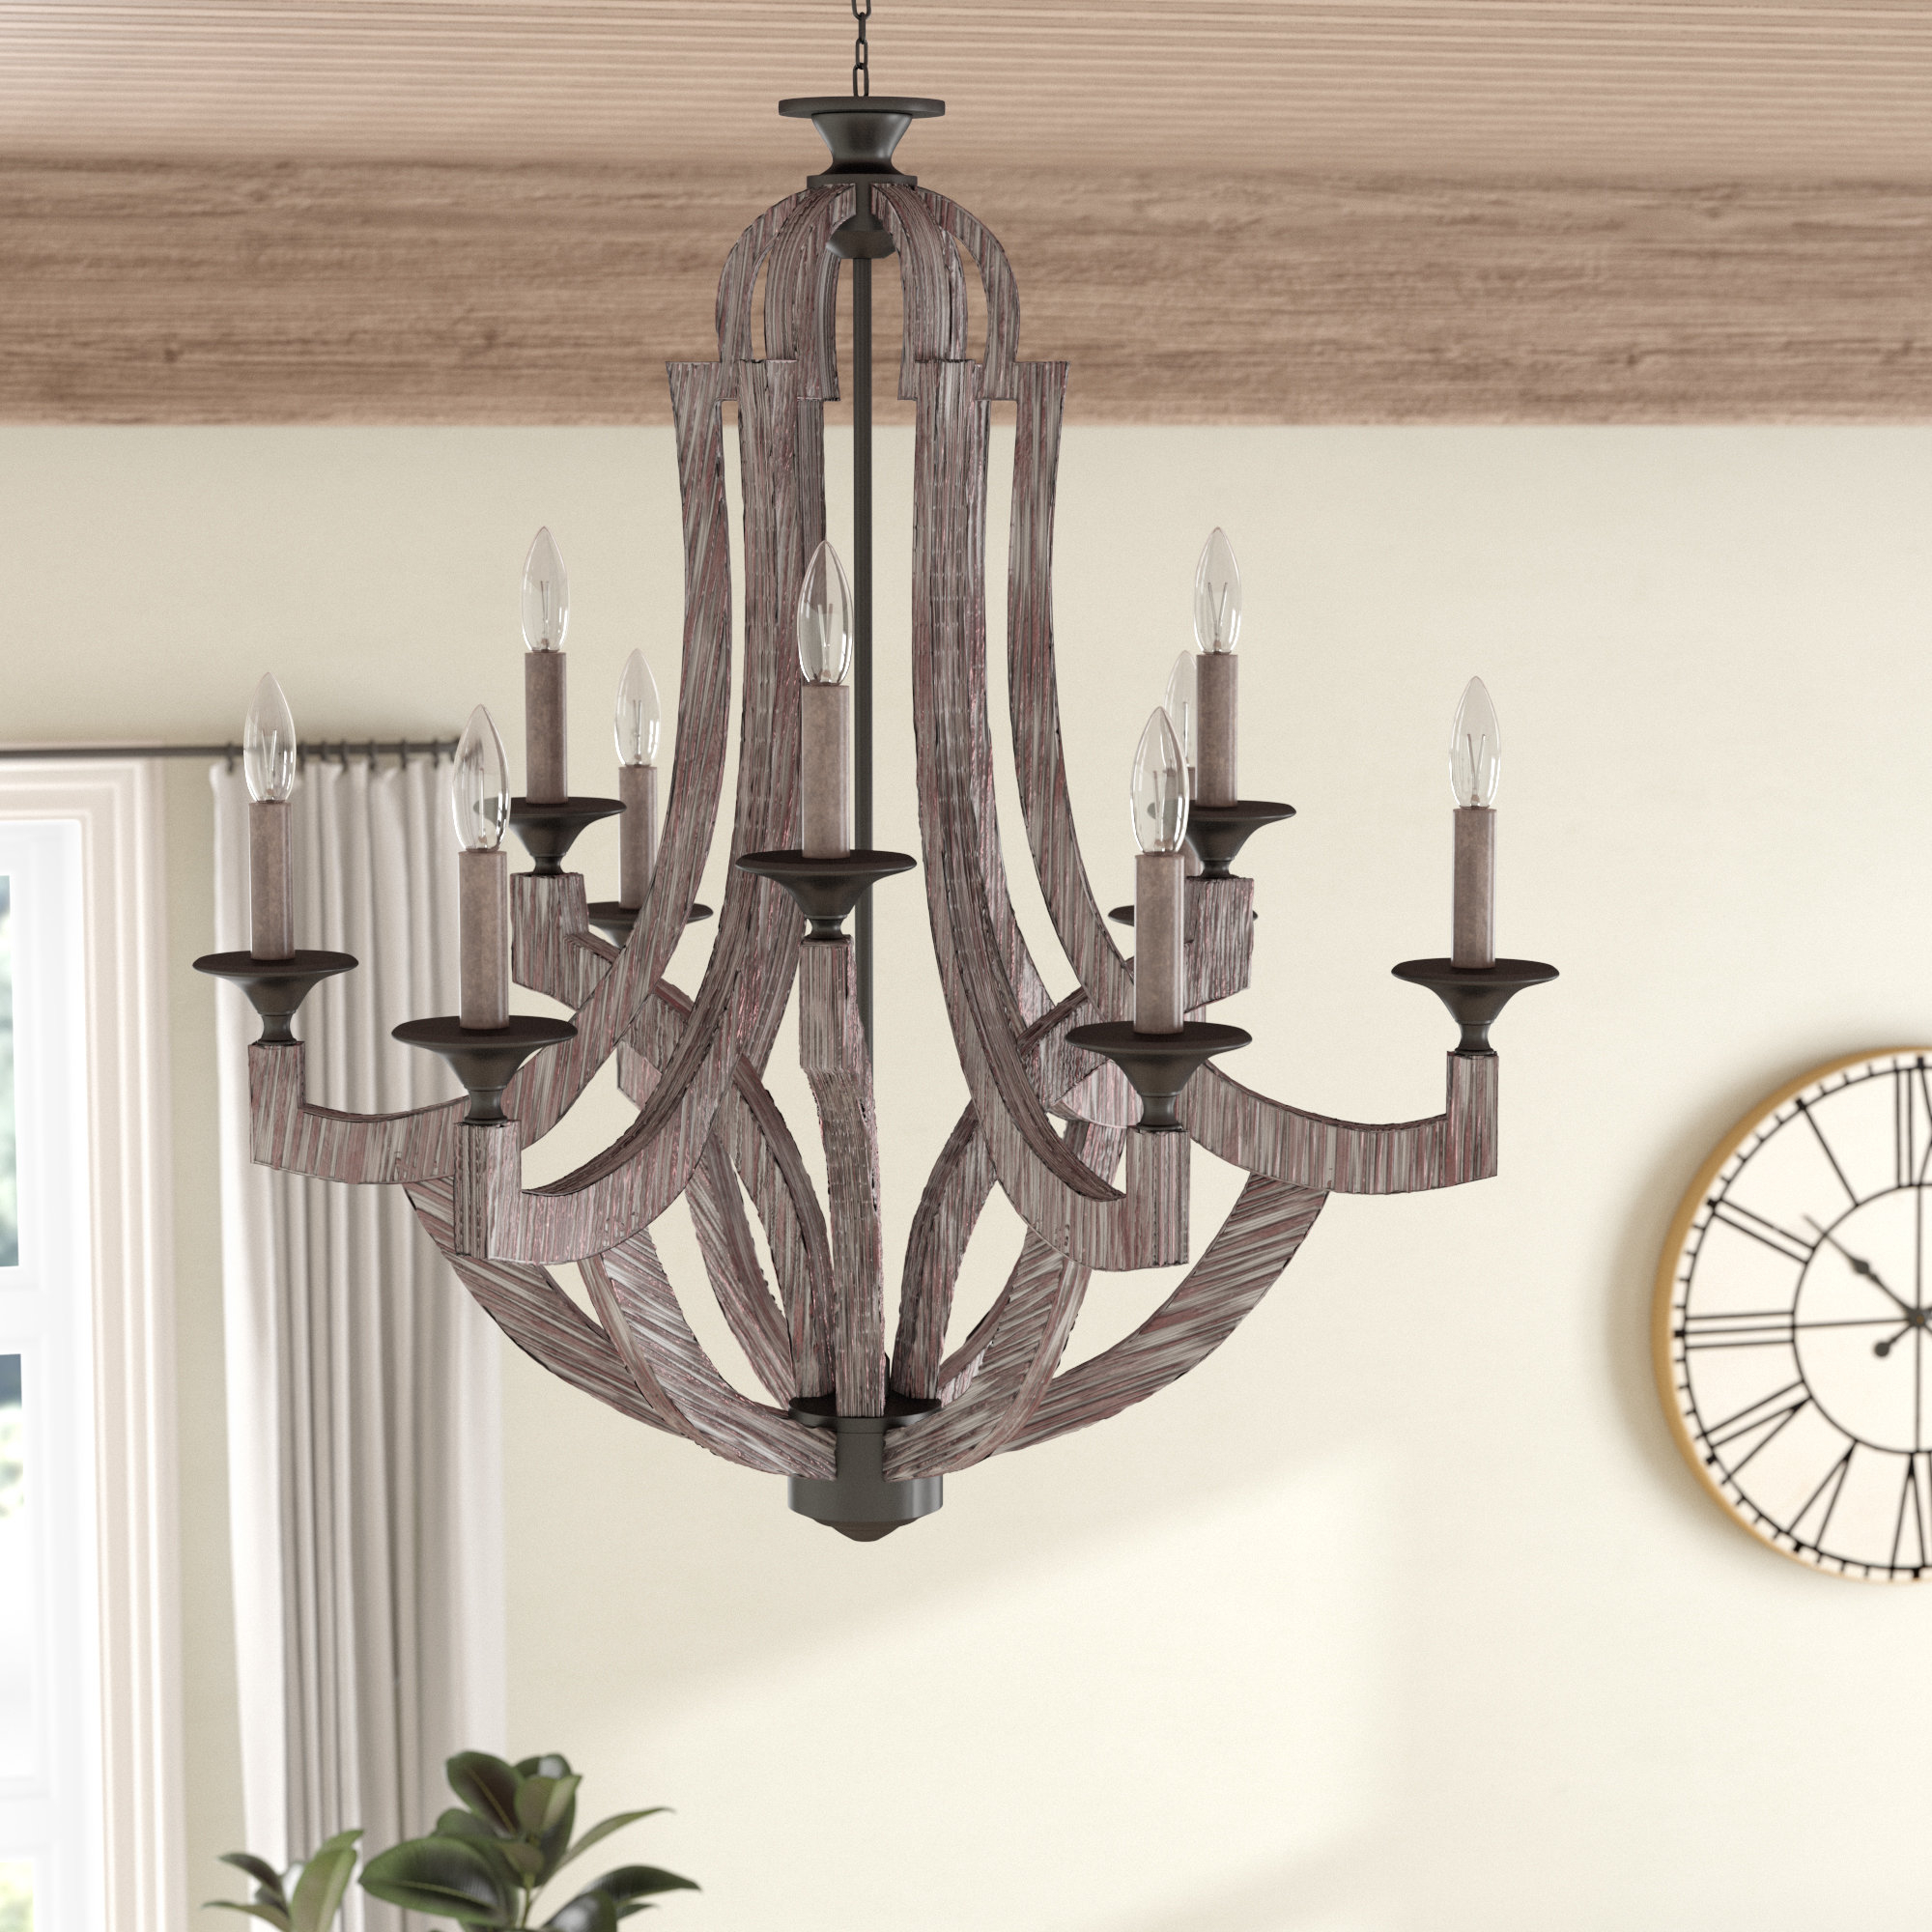 9 Light Candle Chandeliers (Gallery 9 of 20)